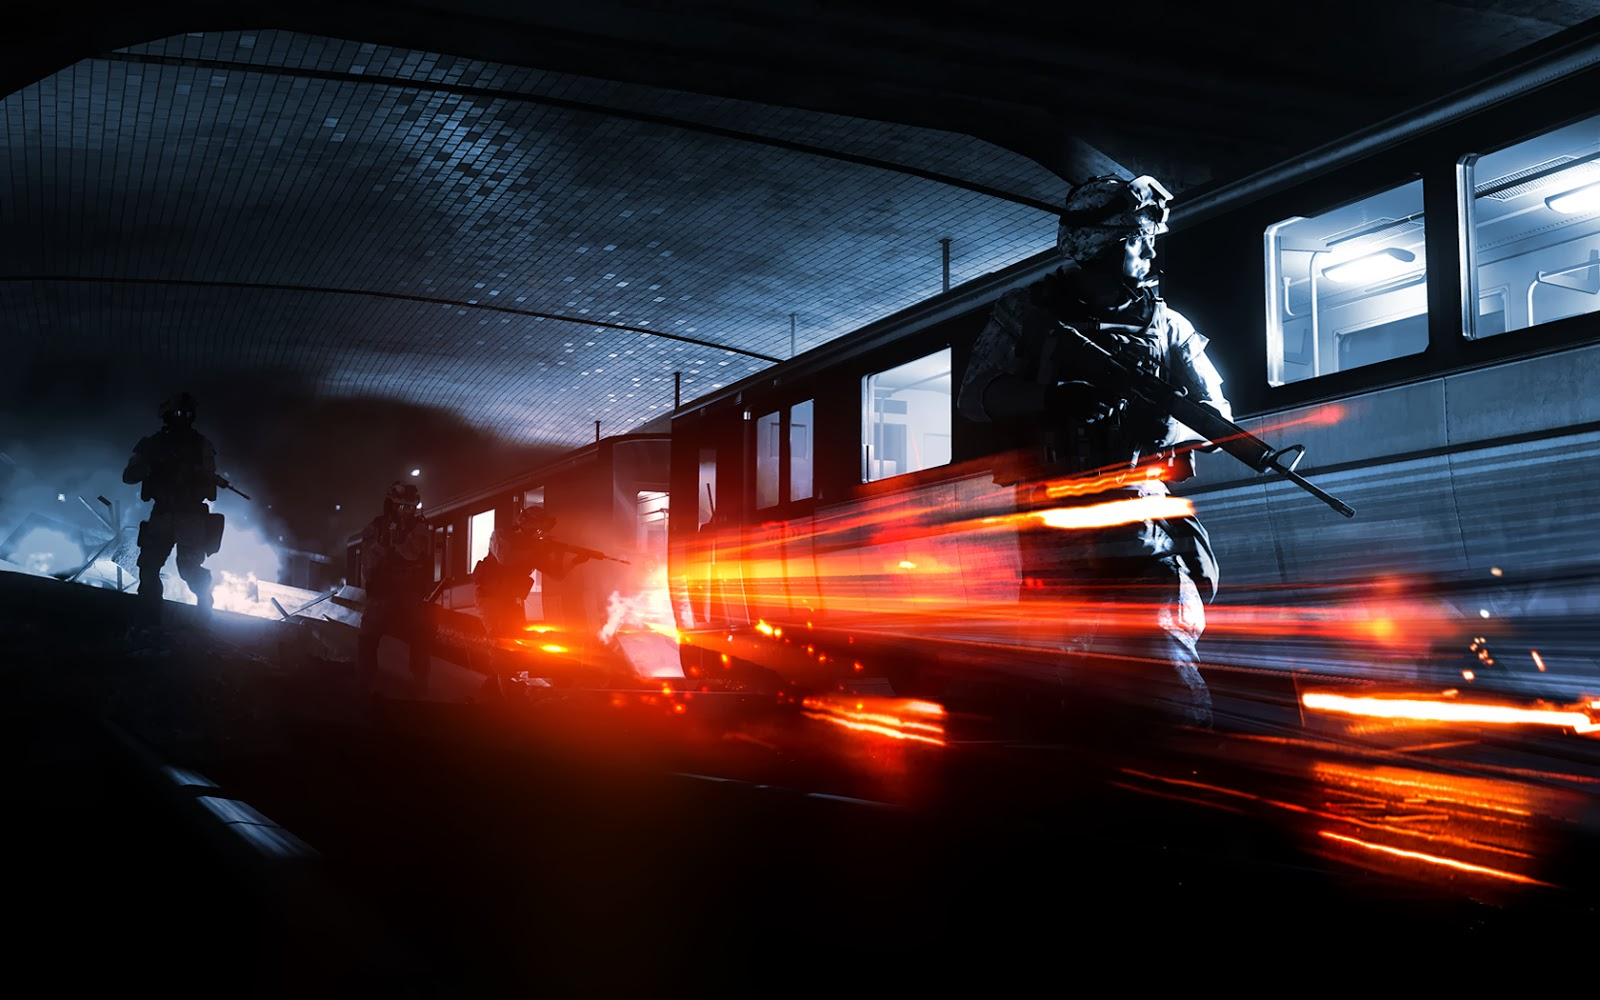 Download Wallpaper 1280x1280 Battlefield 4 Game Ea: Download Battlefield 3 PC Game Full Version